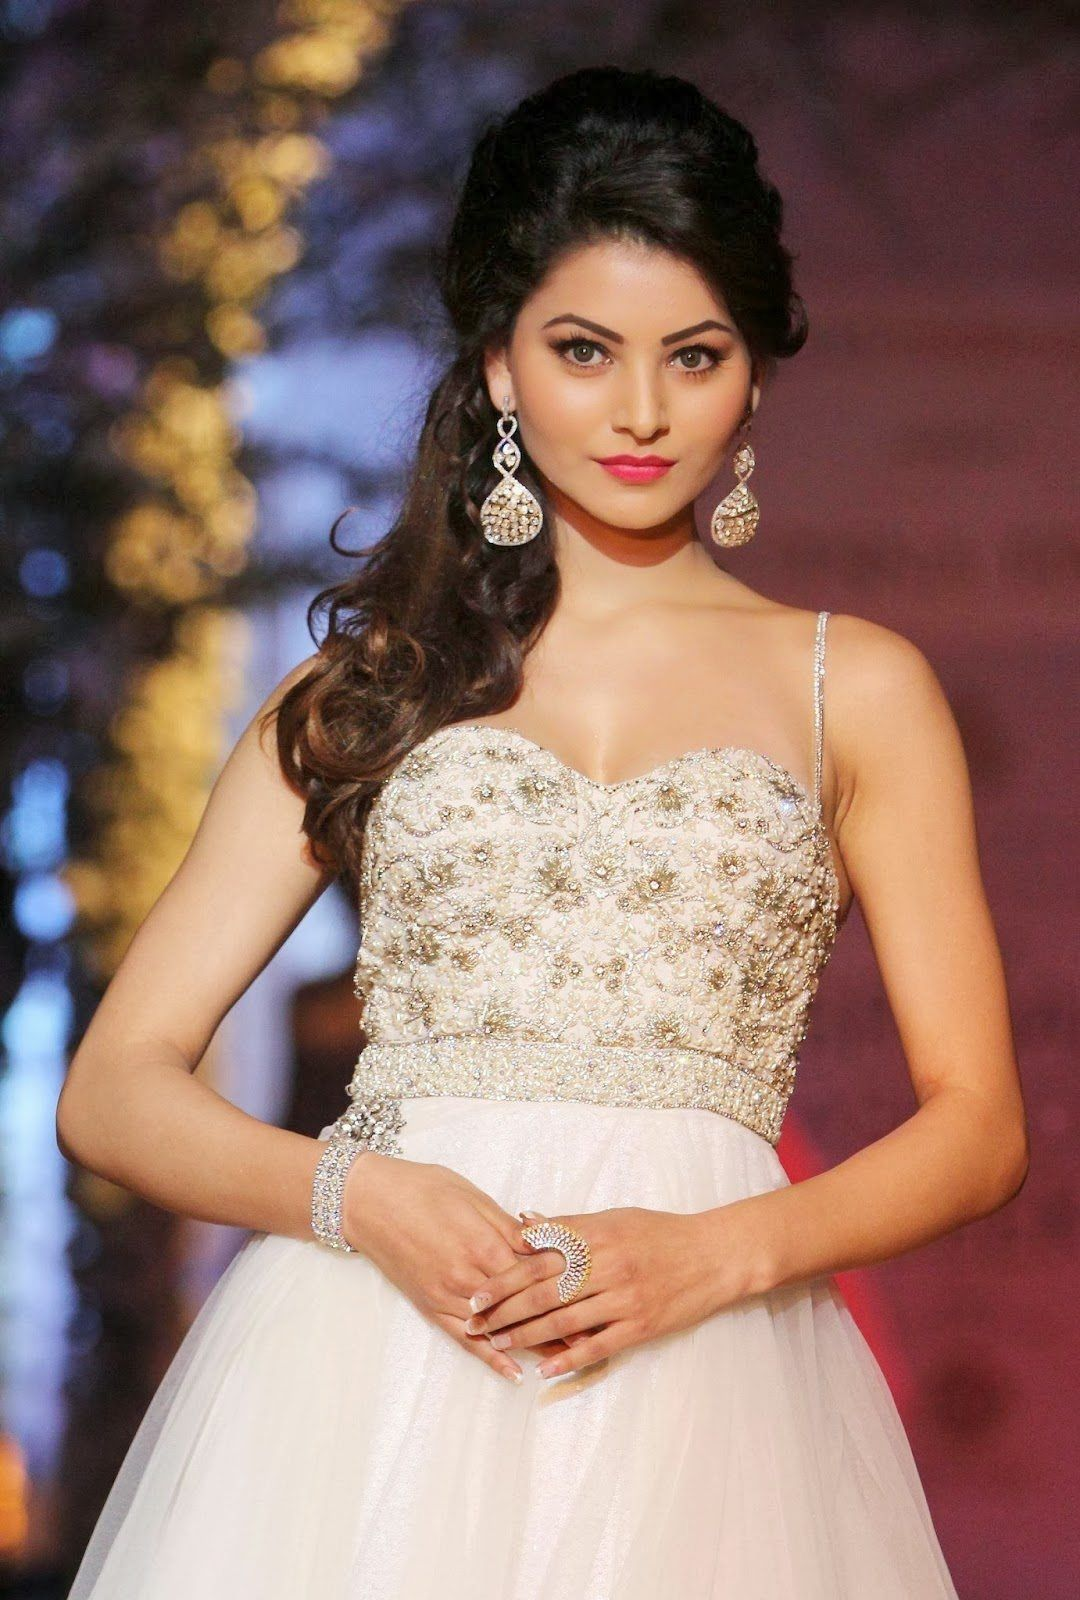 Hd wallpaper urvashi - Tv Actresses Wallpapers Pictures In Hd And Their Biography Urvashi Rautela Urvashi Pinterest Actress Wallpaper Actresses And Wallpaper